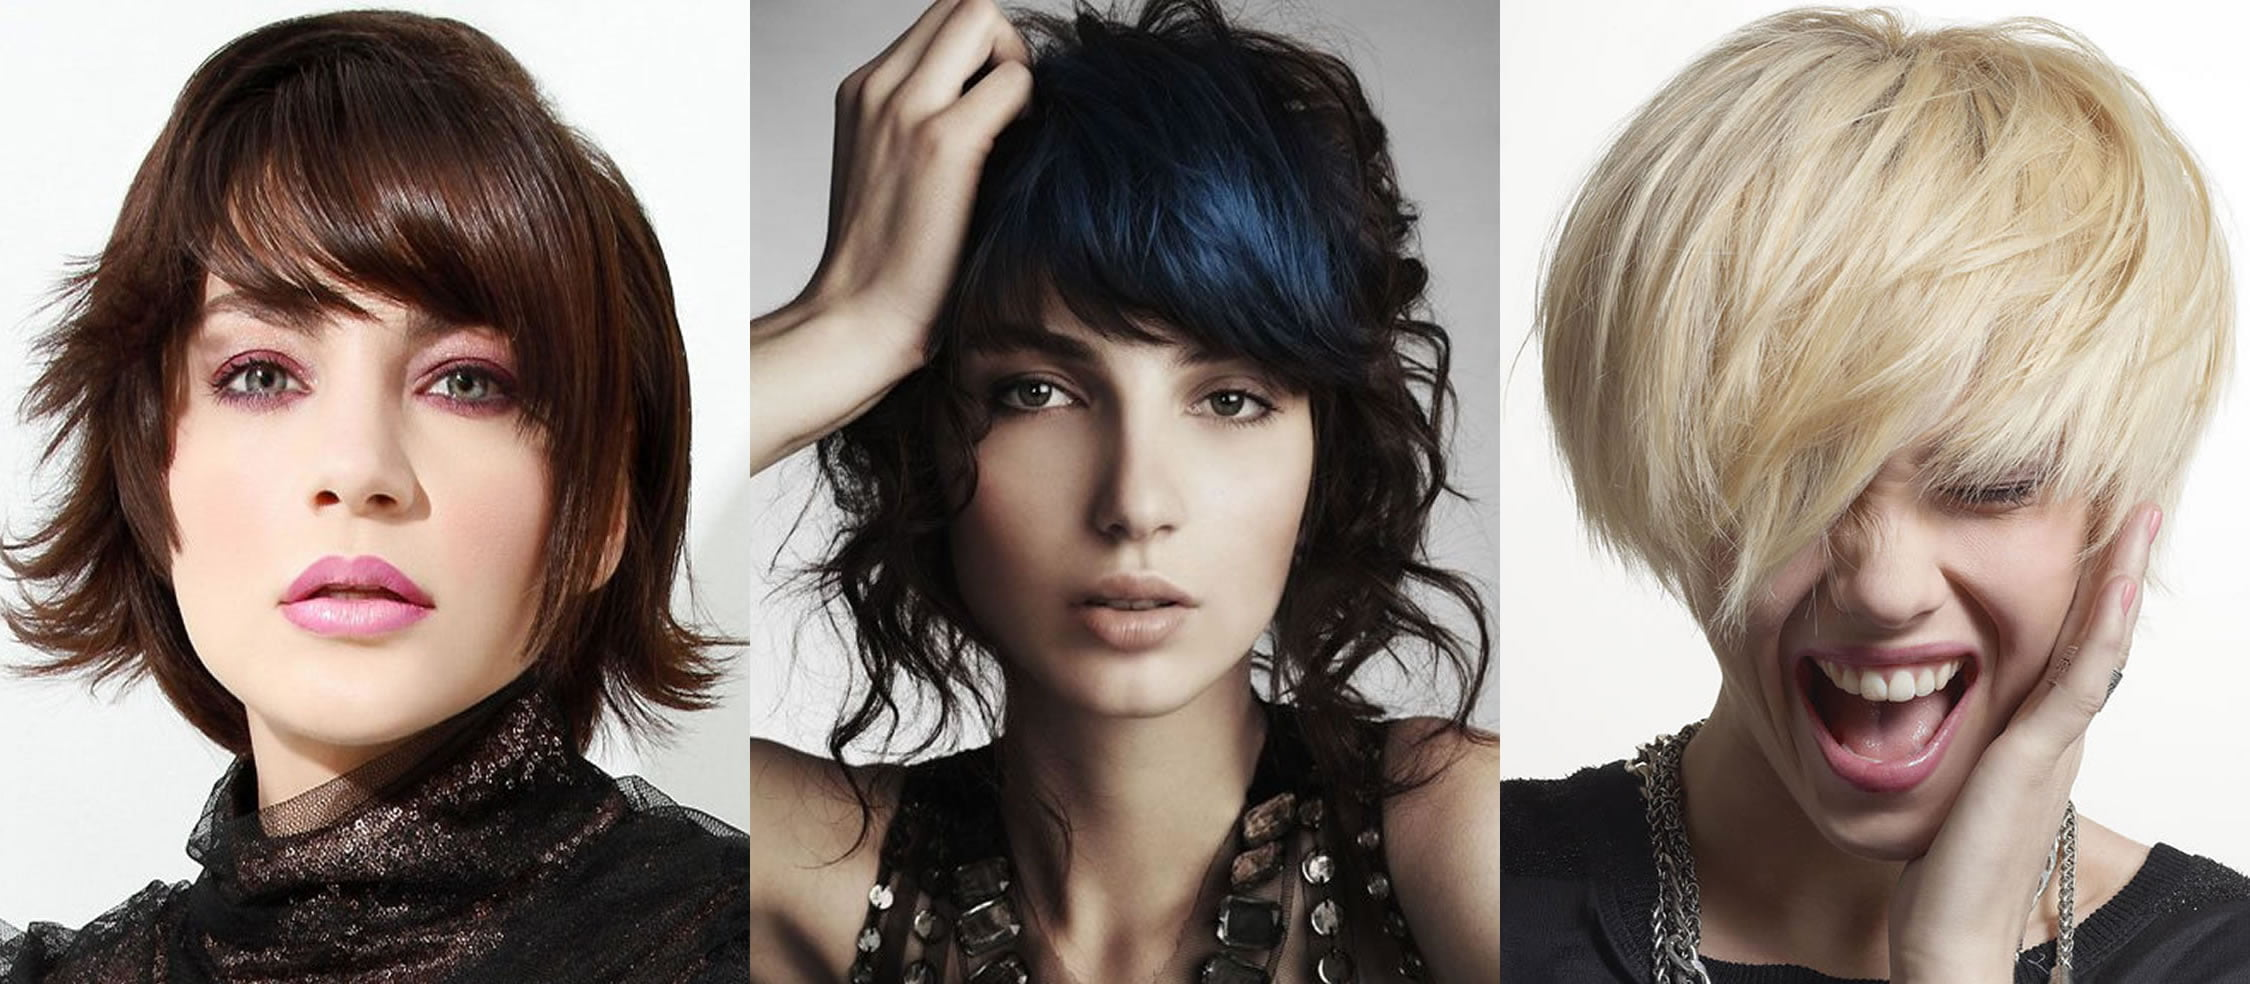 Top 70 Beautiful Short Haircuts for Women 2017-2018 | Images+Videos